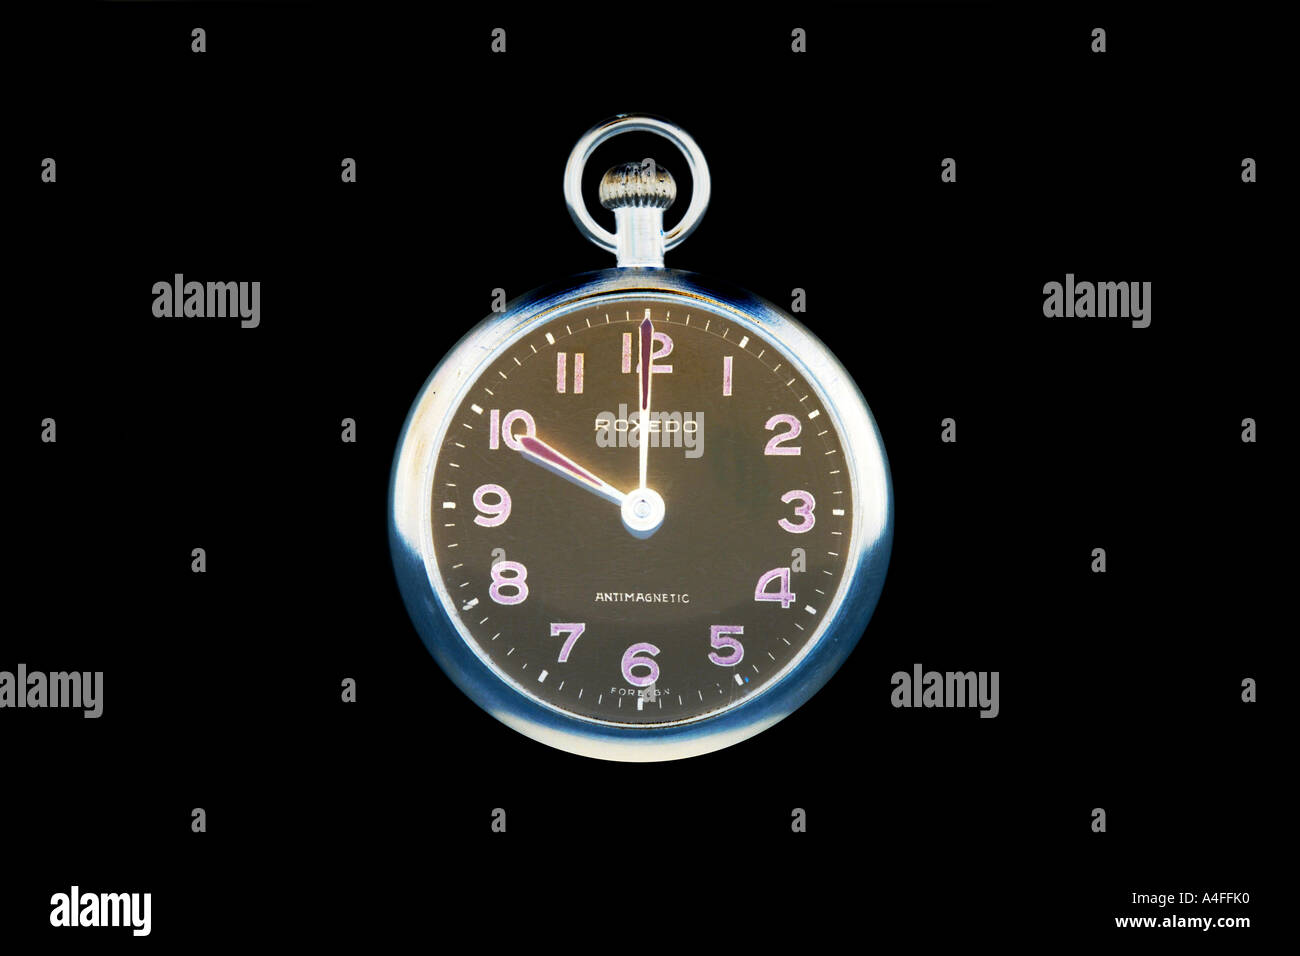 Pocketwatch at 10 o'clock against a black background. - Stock Image